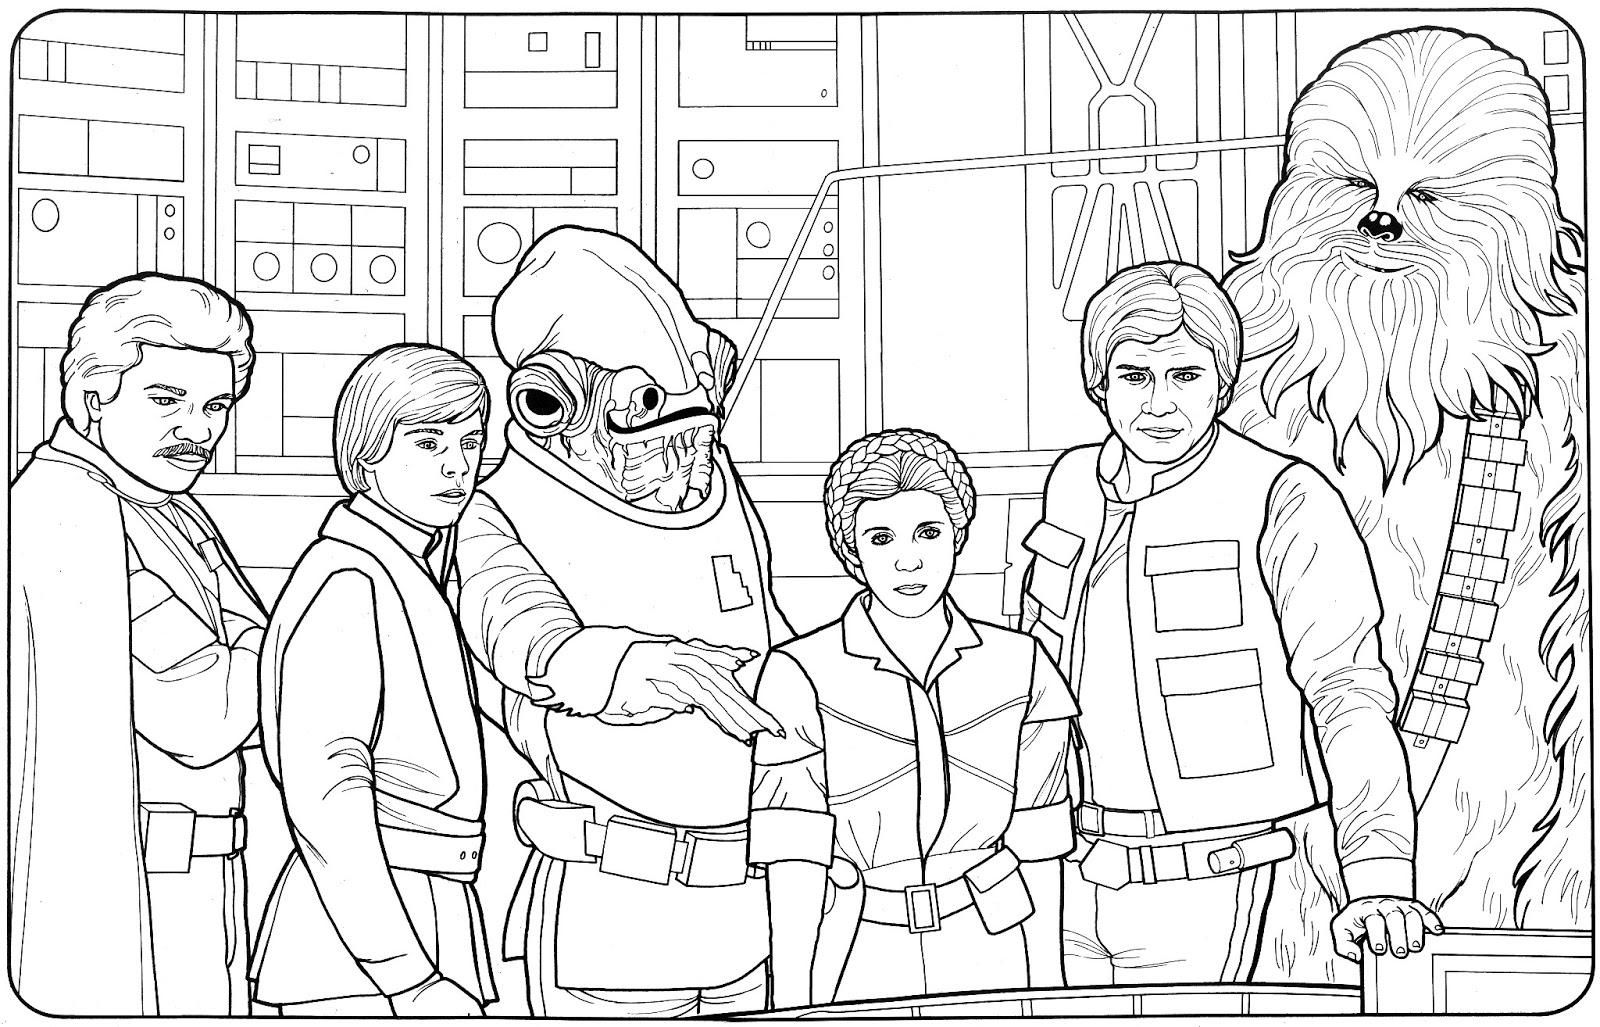 Last Jedi Coloring Pages Star Wars Star Wars Coloring Book Star Wars Coloring Sheet Coloring Pages